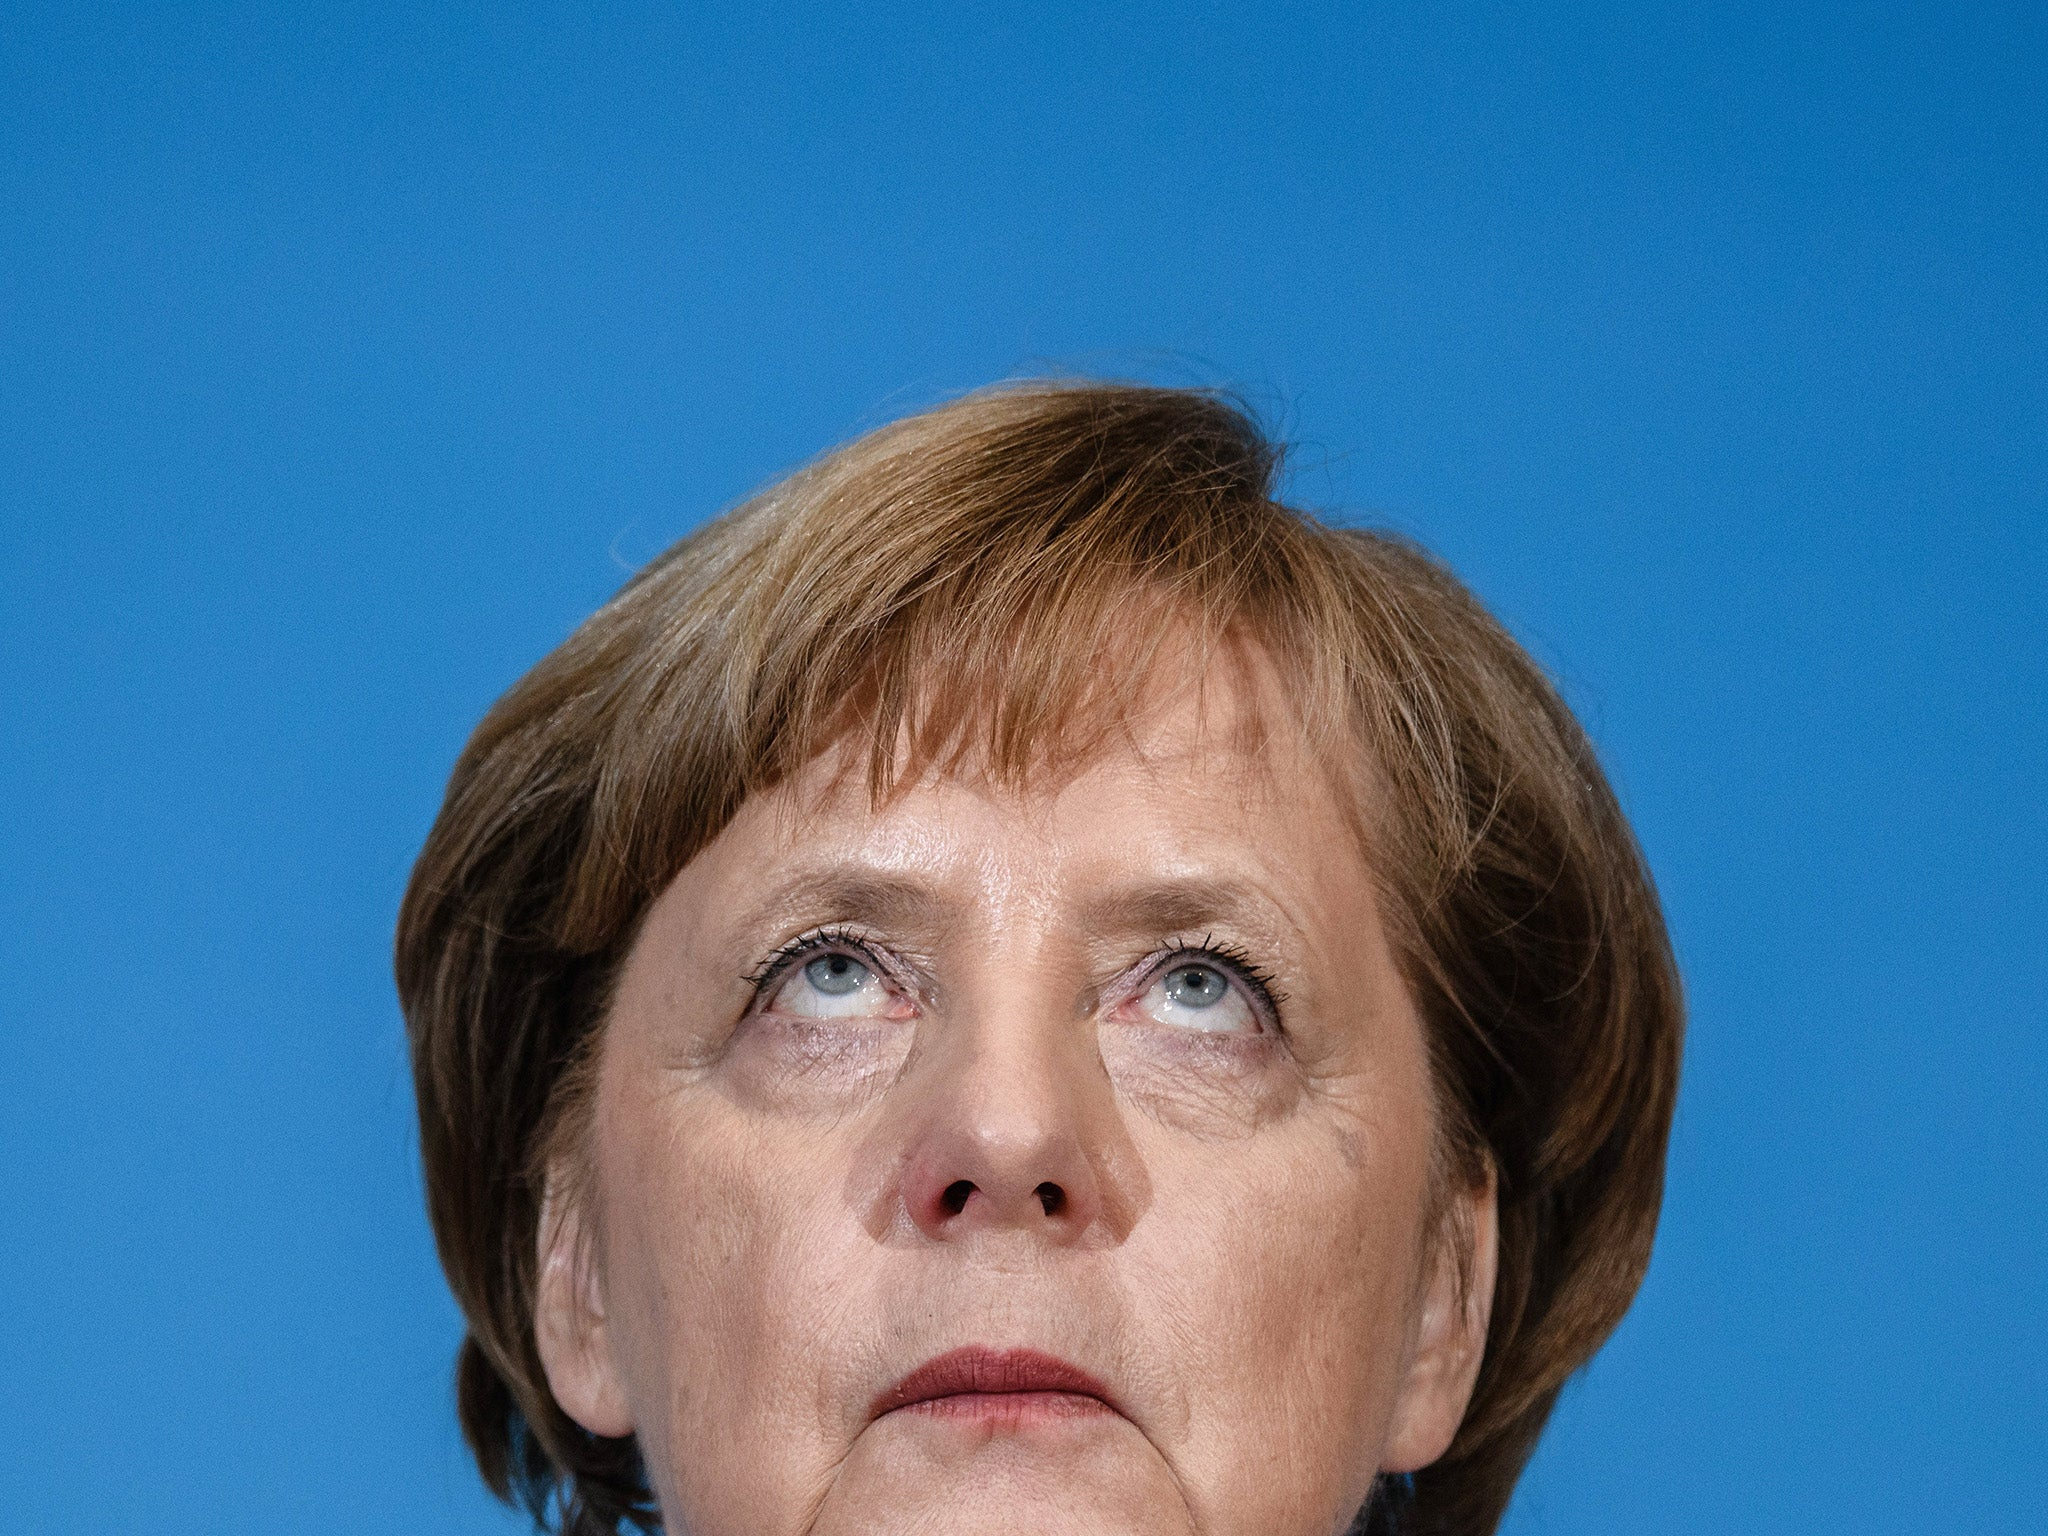 Germany's economy is growing – so why are voters turning against politicians who brought them this success?